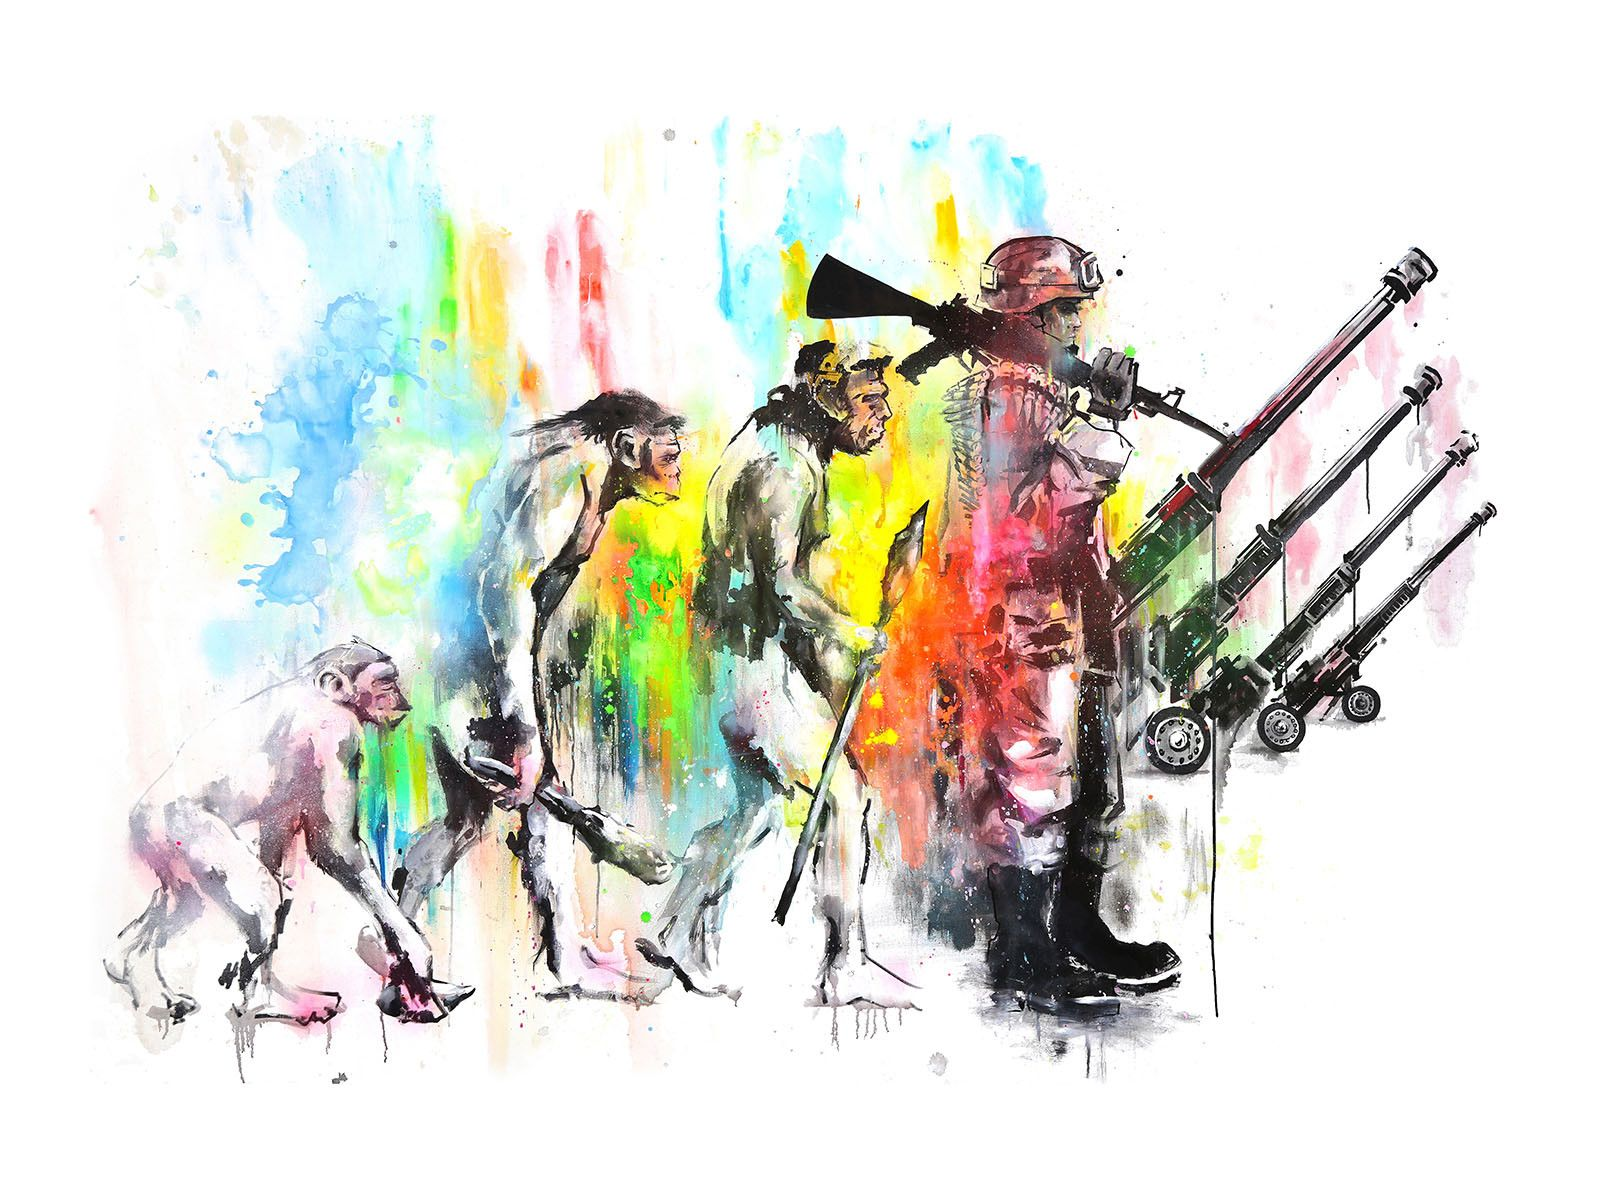 Evolution-Hand-Painted-Multiple-by-Lora-Zombie-Small-Edition-of-just-pieces-Available-Now-wallpaper-wp5604649